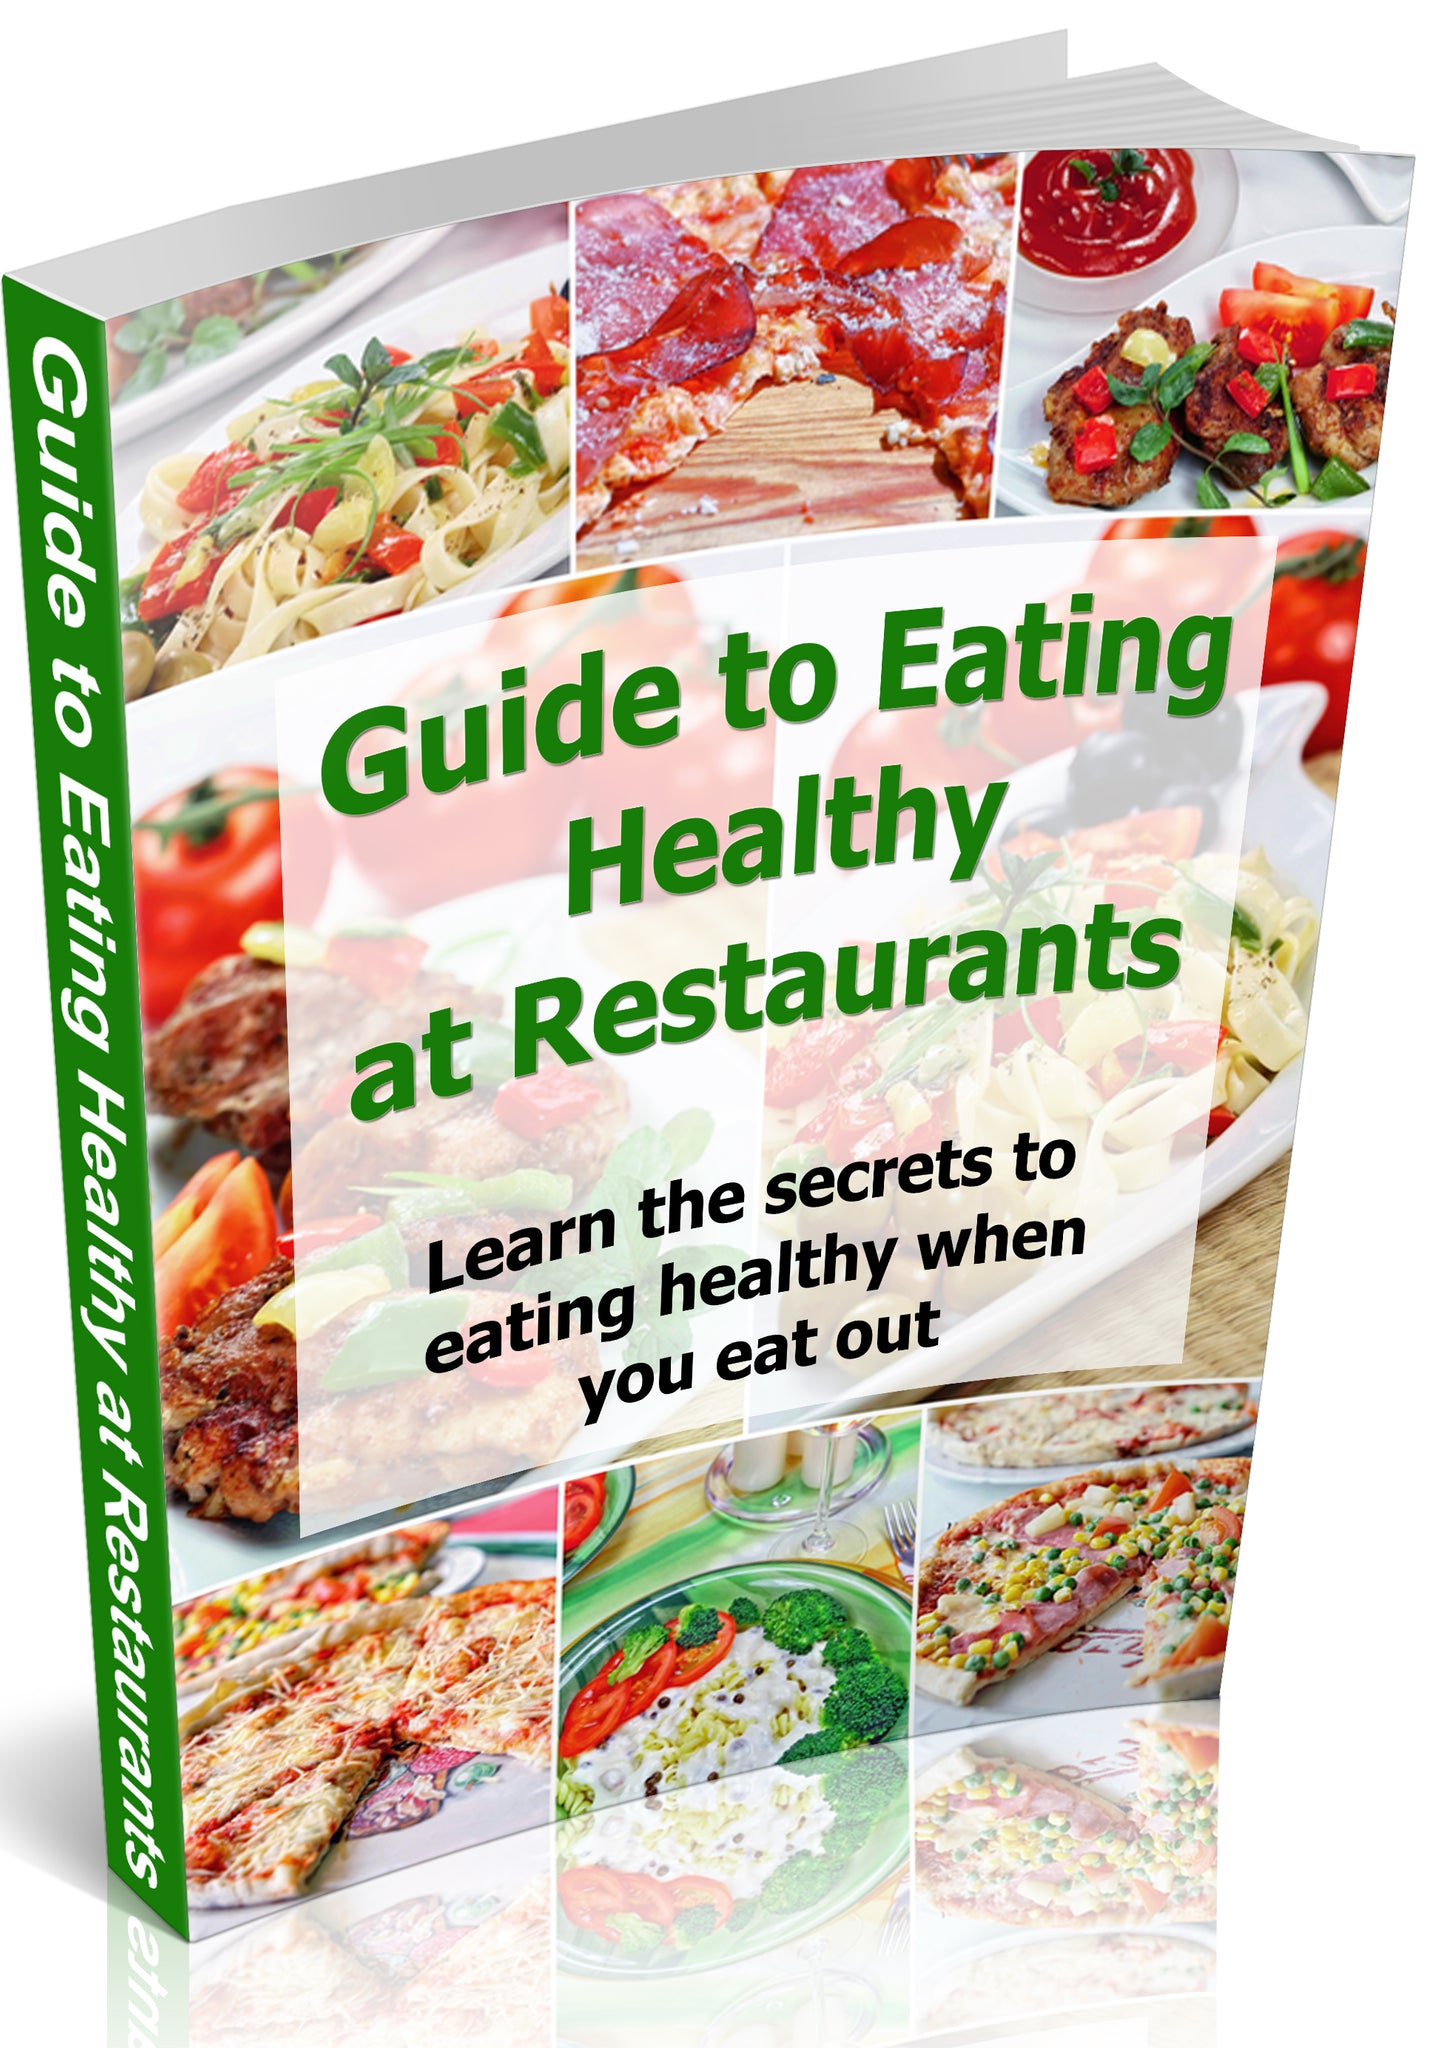 Guide to Eating Healthy at Restaurants - Free Download - traversebayfarms